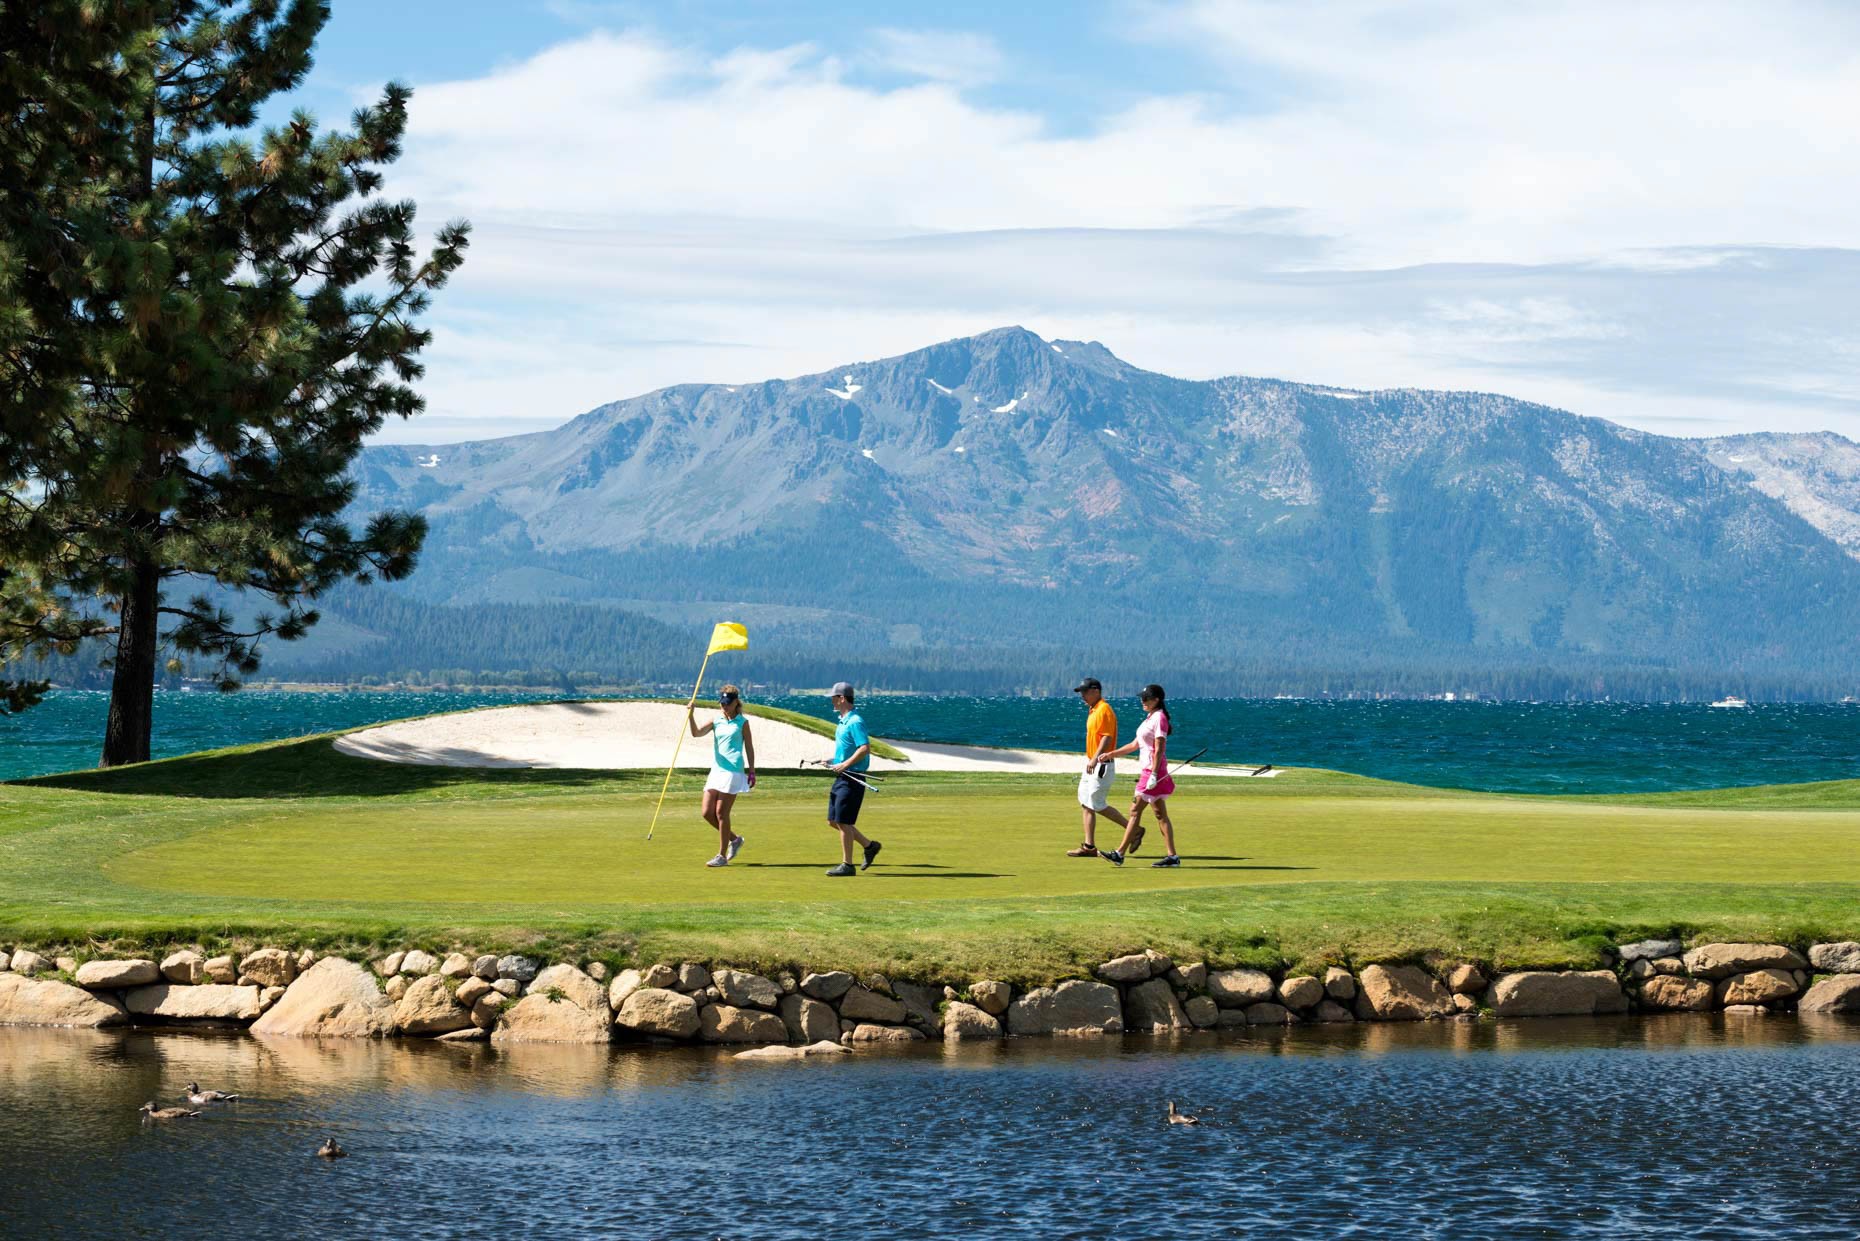 Golfing At Edgewood - Lake Tahoe, Nevada